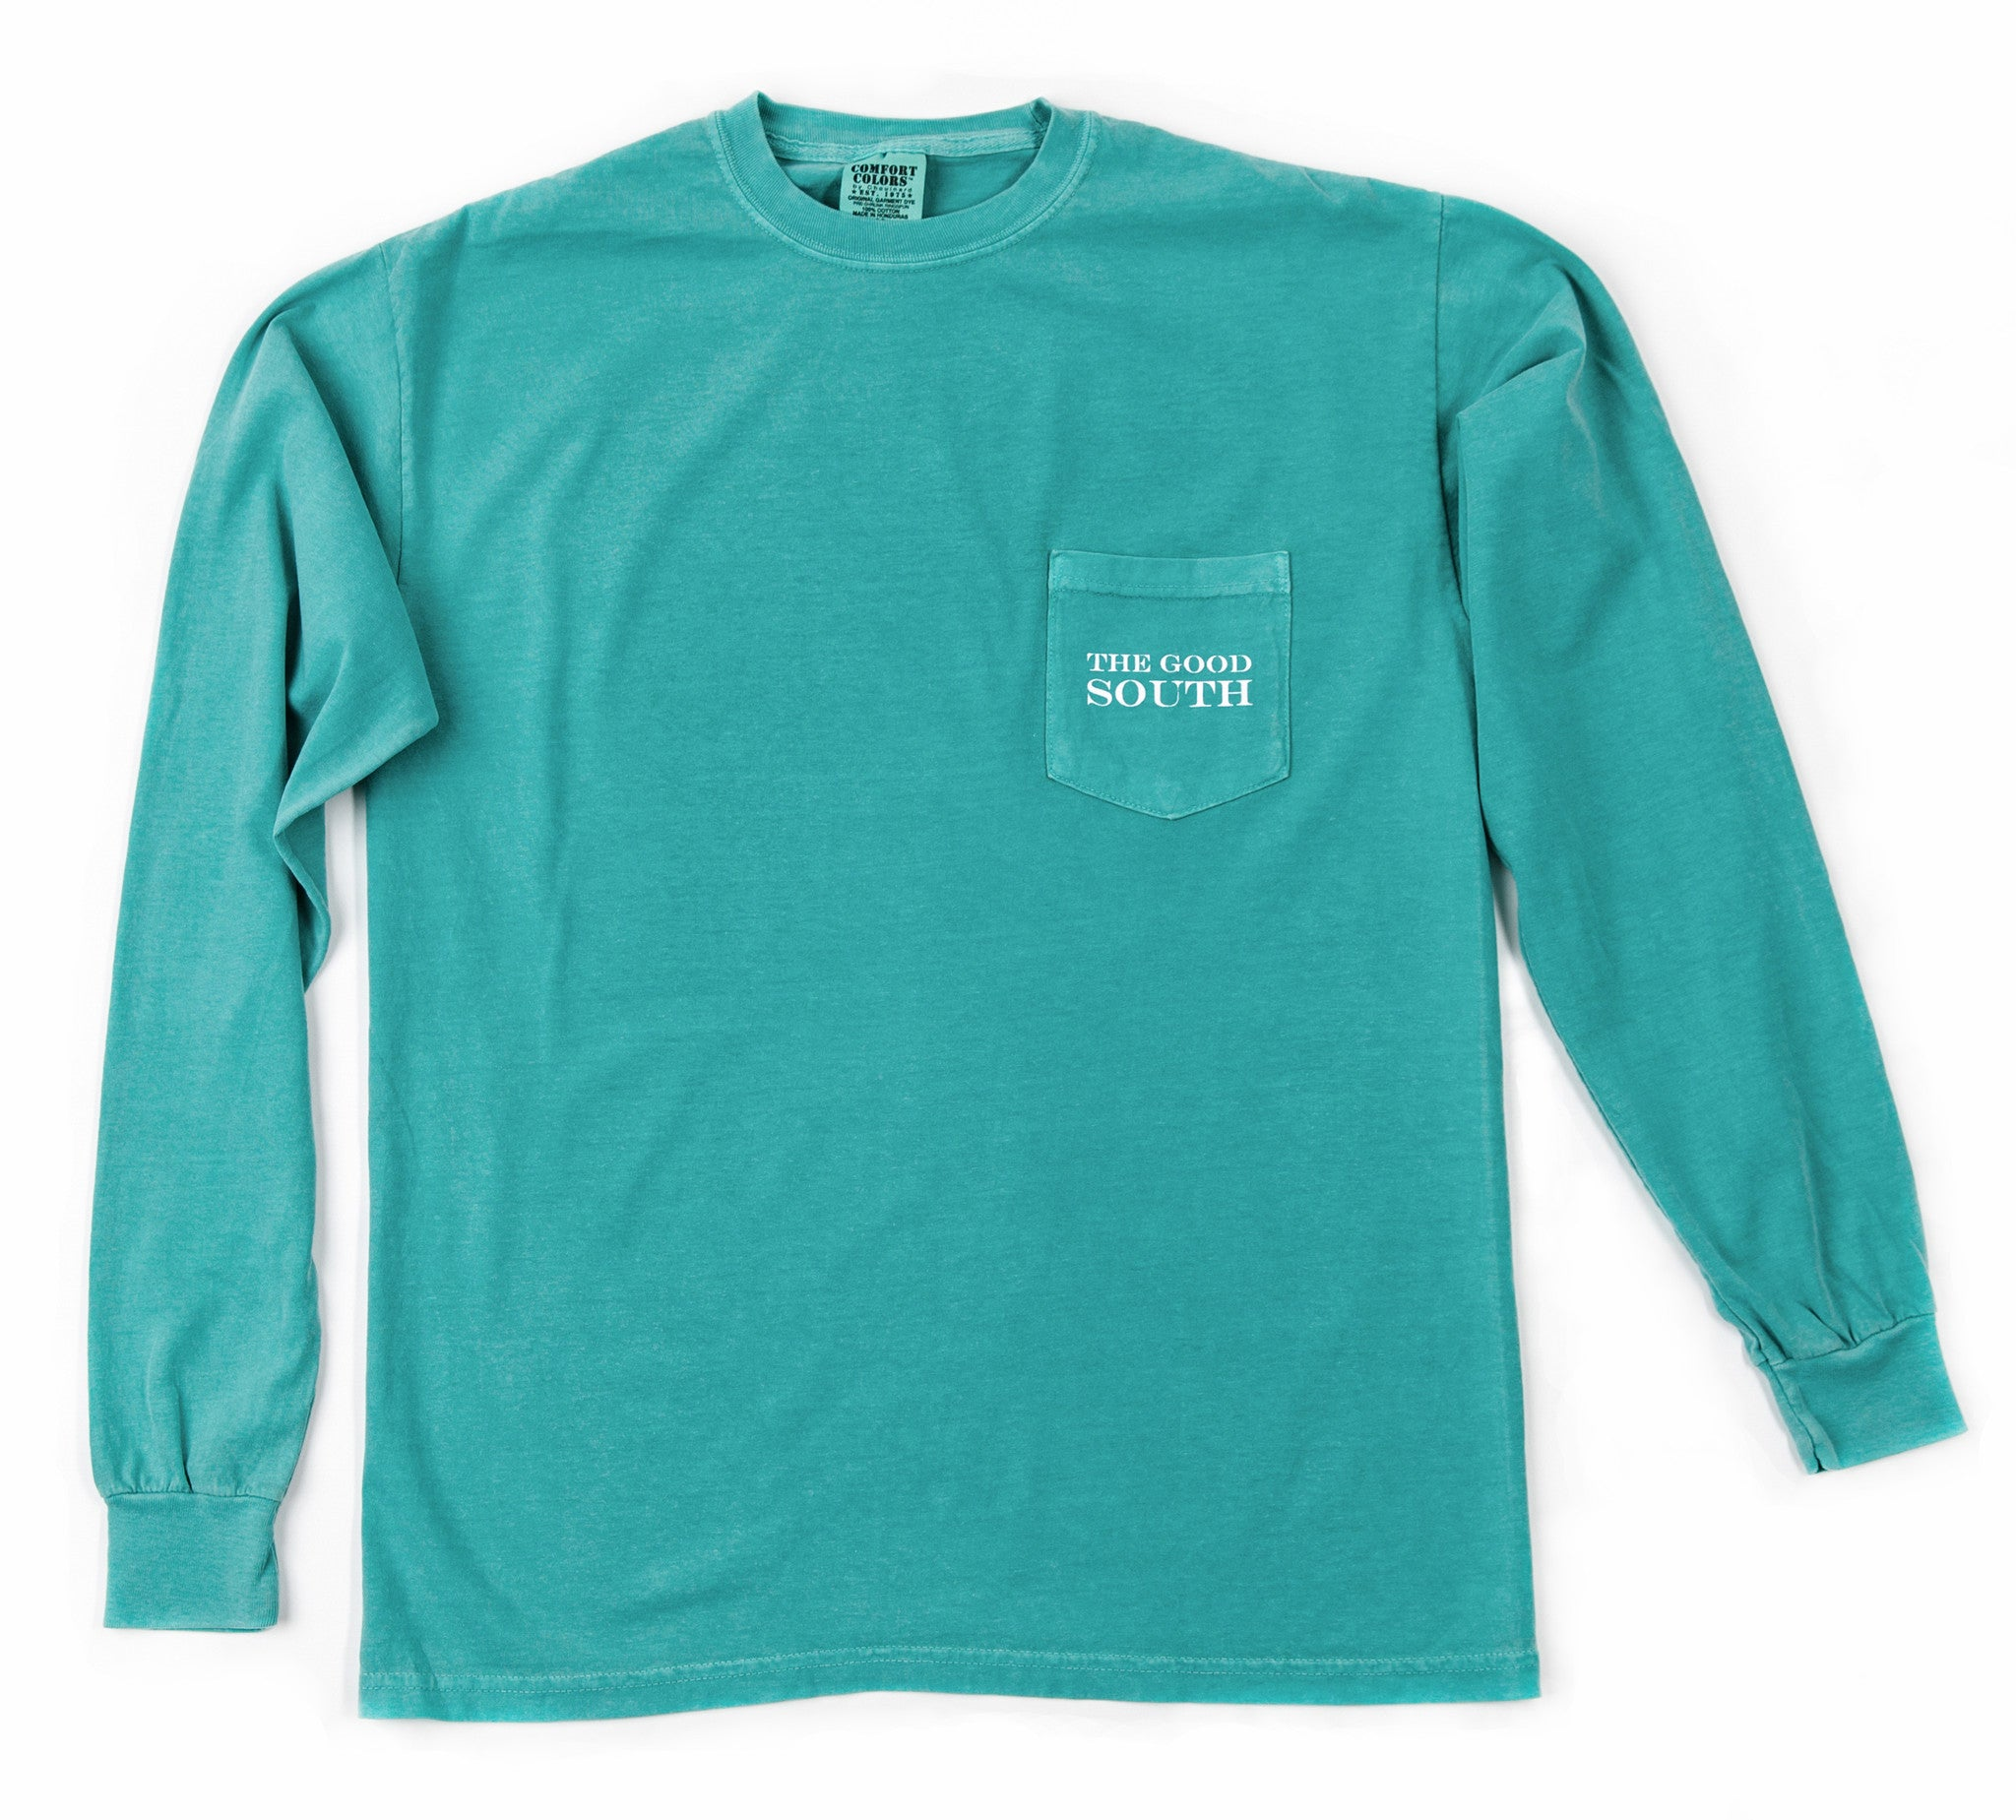 The Good South Long Sleeve T-Shirt: Seafoam